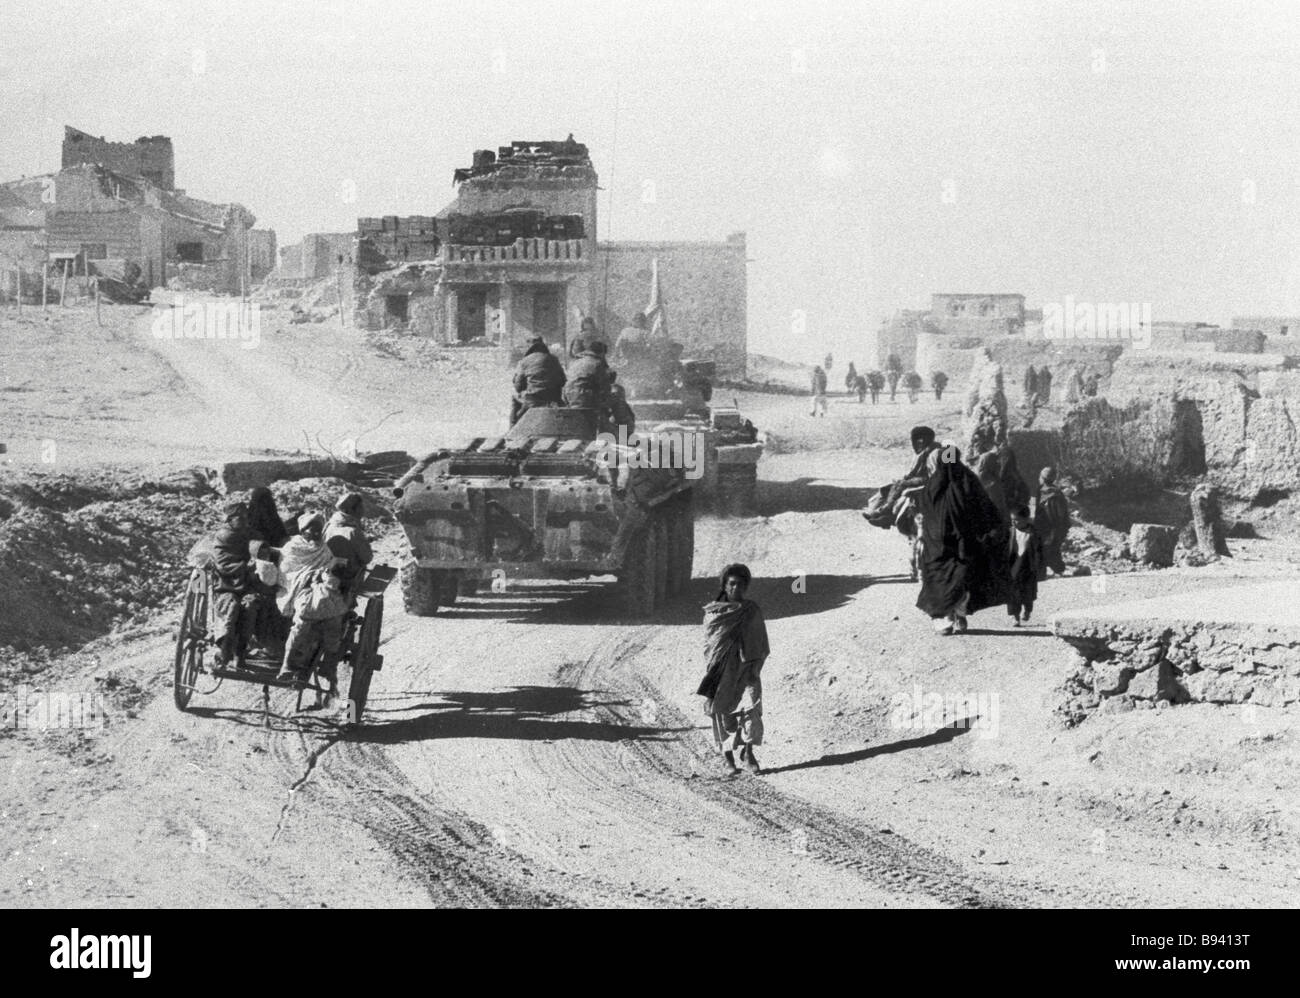 Soviet Afghanistan war - Page 6 Soviet-military-hardware-moves-along-a-kishlak-street-afghanistan-B9413T